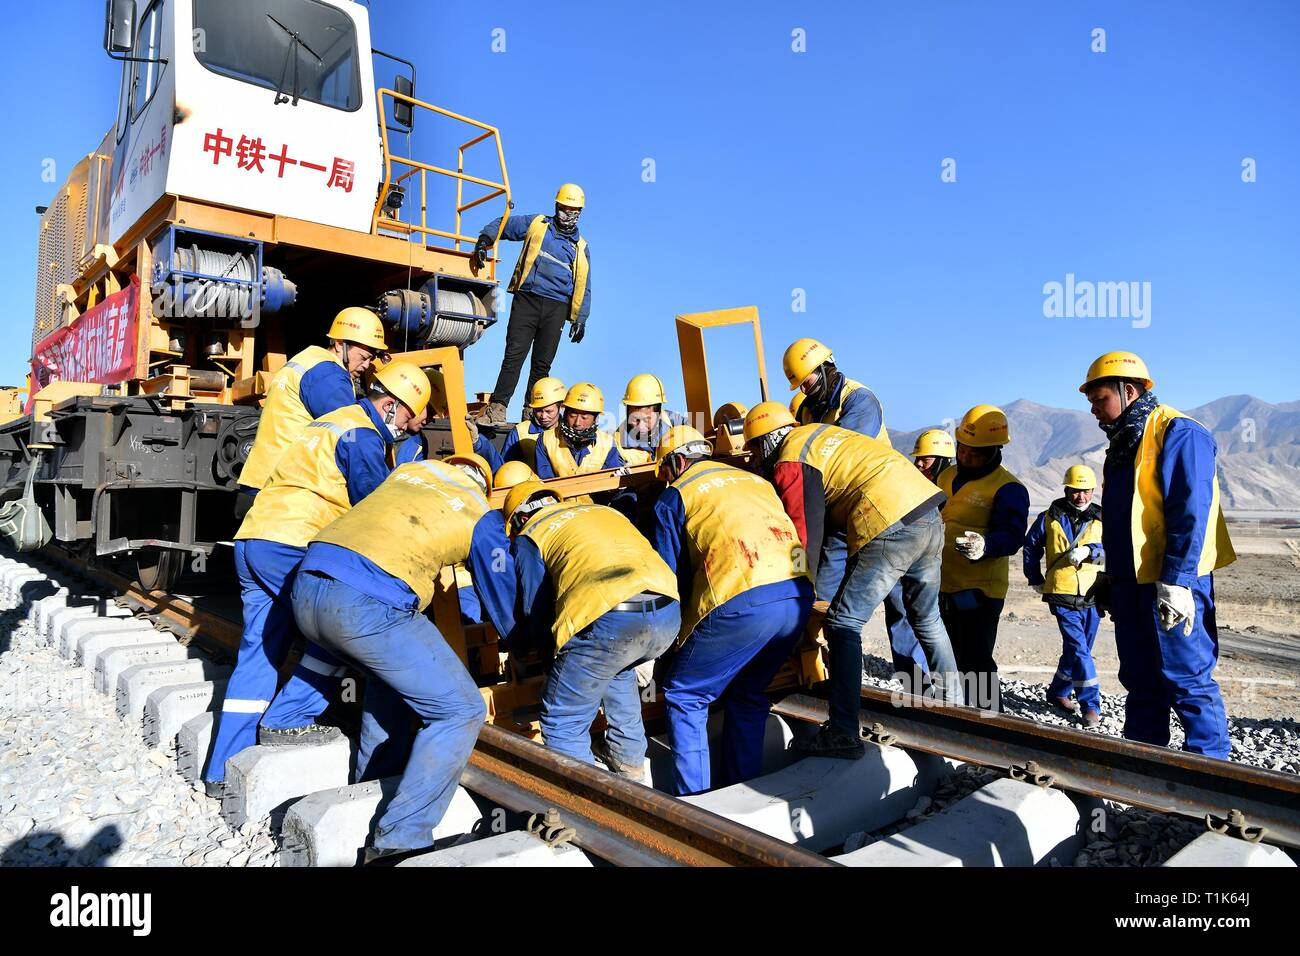 Beijing, China's Tibet Autonomous Region. 8th Mar, 2019. Workers prepare for laying the long steel rail for Lhasa-Nyingchi railway in Gonggar County of Shannan, southwest China's Tibet Autonomous Region, March 8, 2019. Credit: Li Xin/Xinhua/Alamy Live News - Stock Image